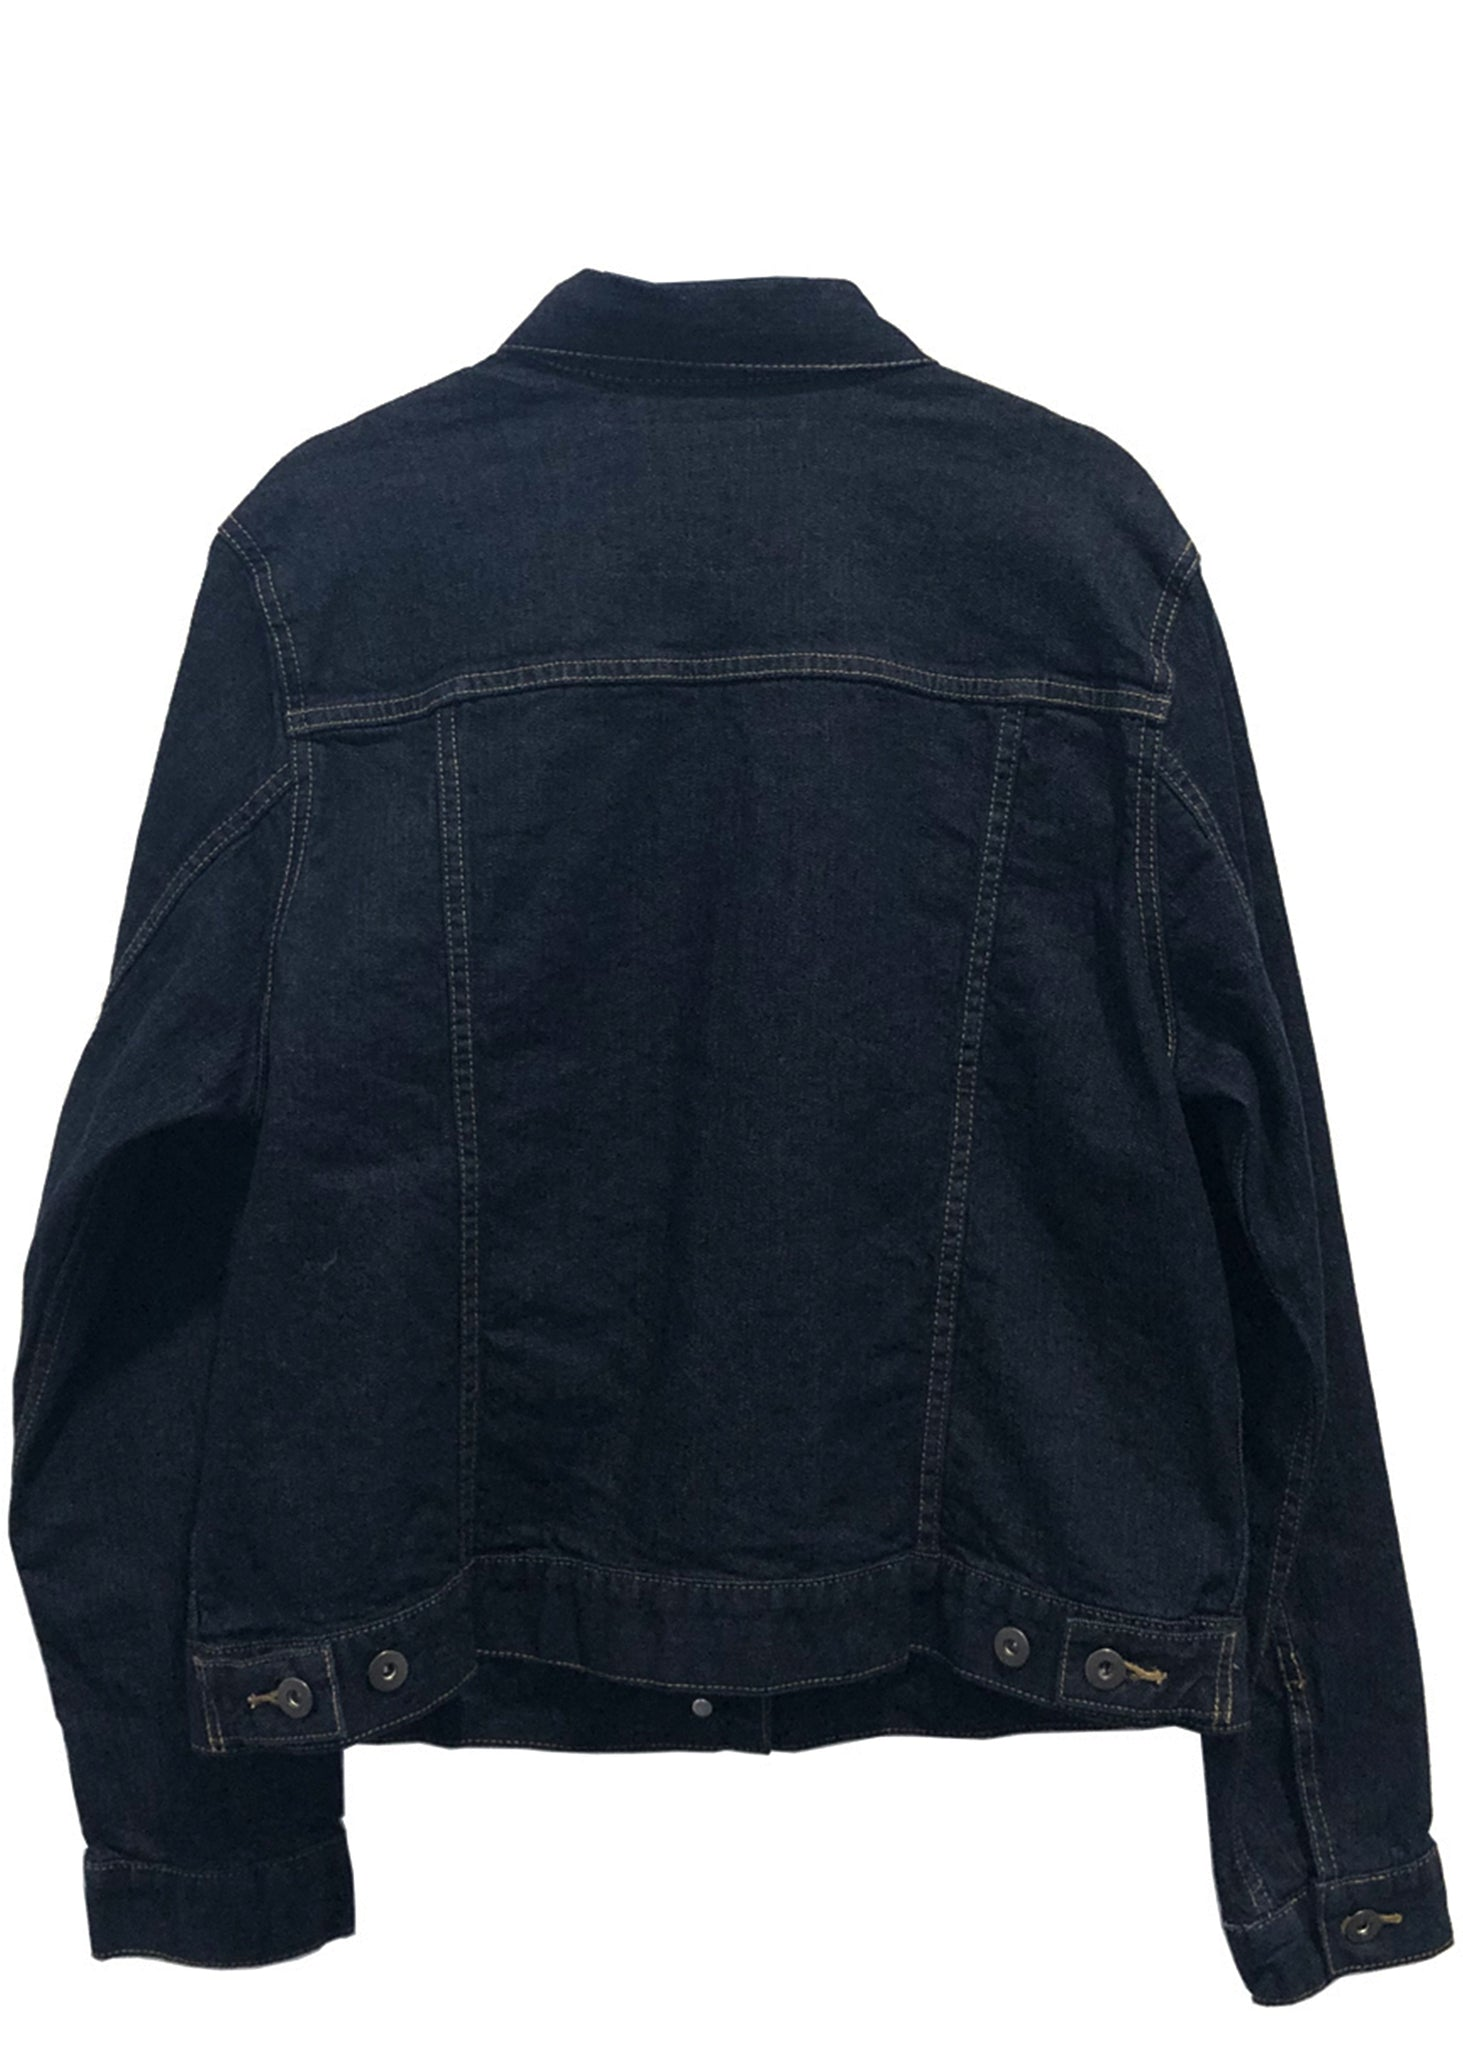 GARDEN BREKKY DENIM JACKET - Women's Jackets & Coats - Libertine